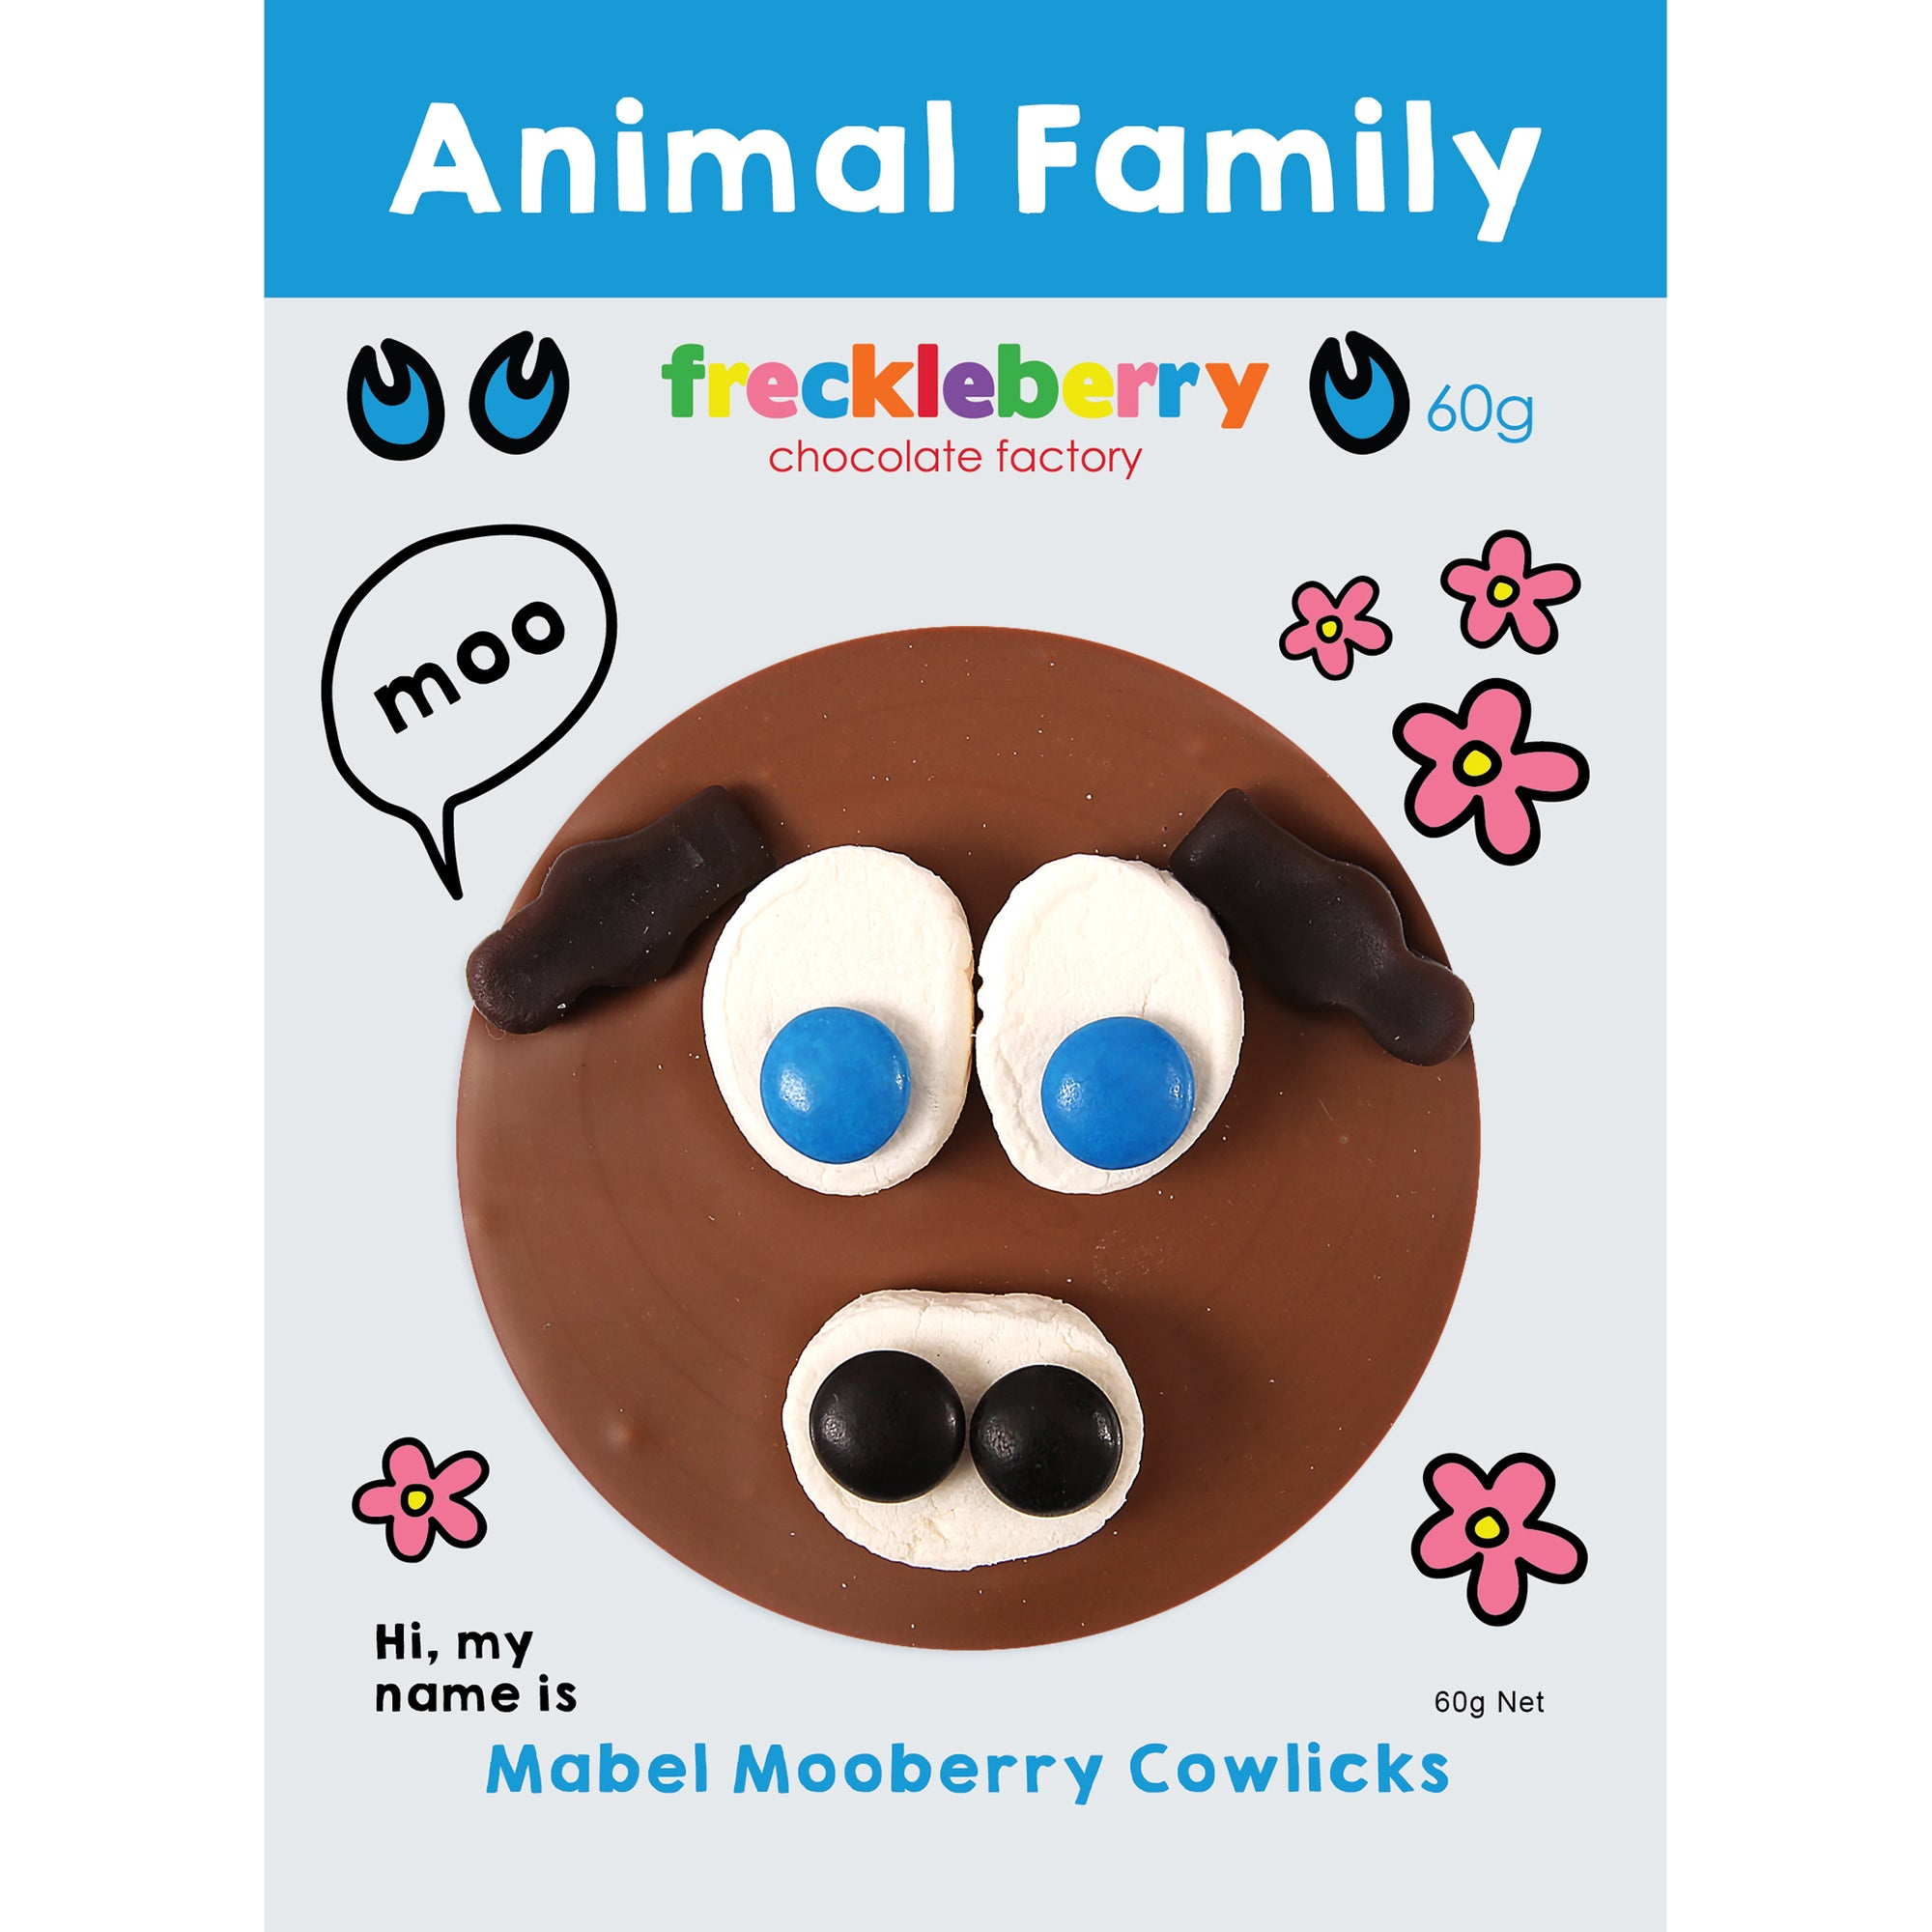 Mabel Mooberry Cowlicks